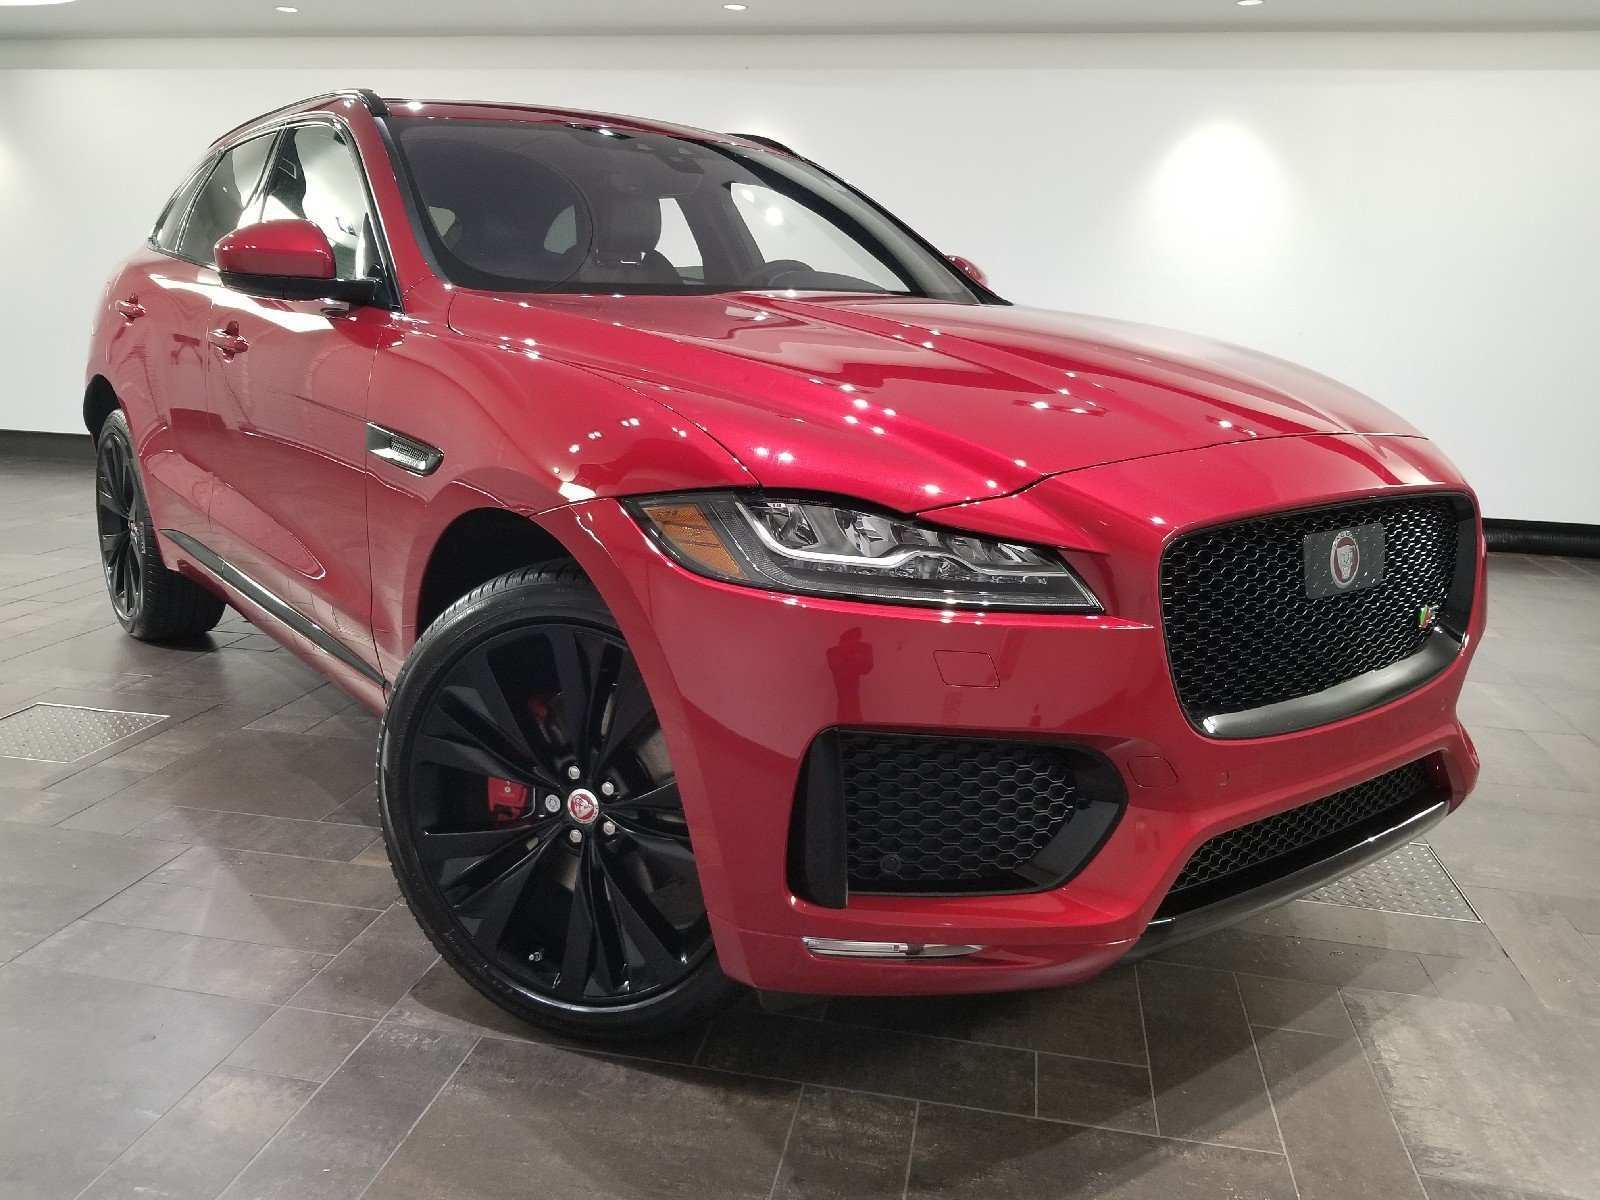 54 The Suv Jaguar 2019 Price And Review